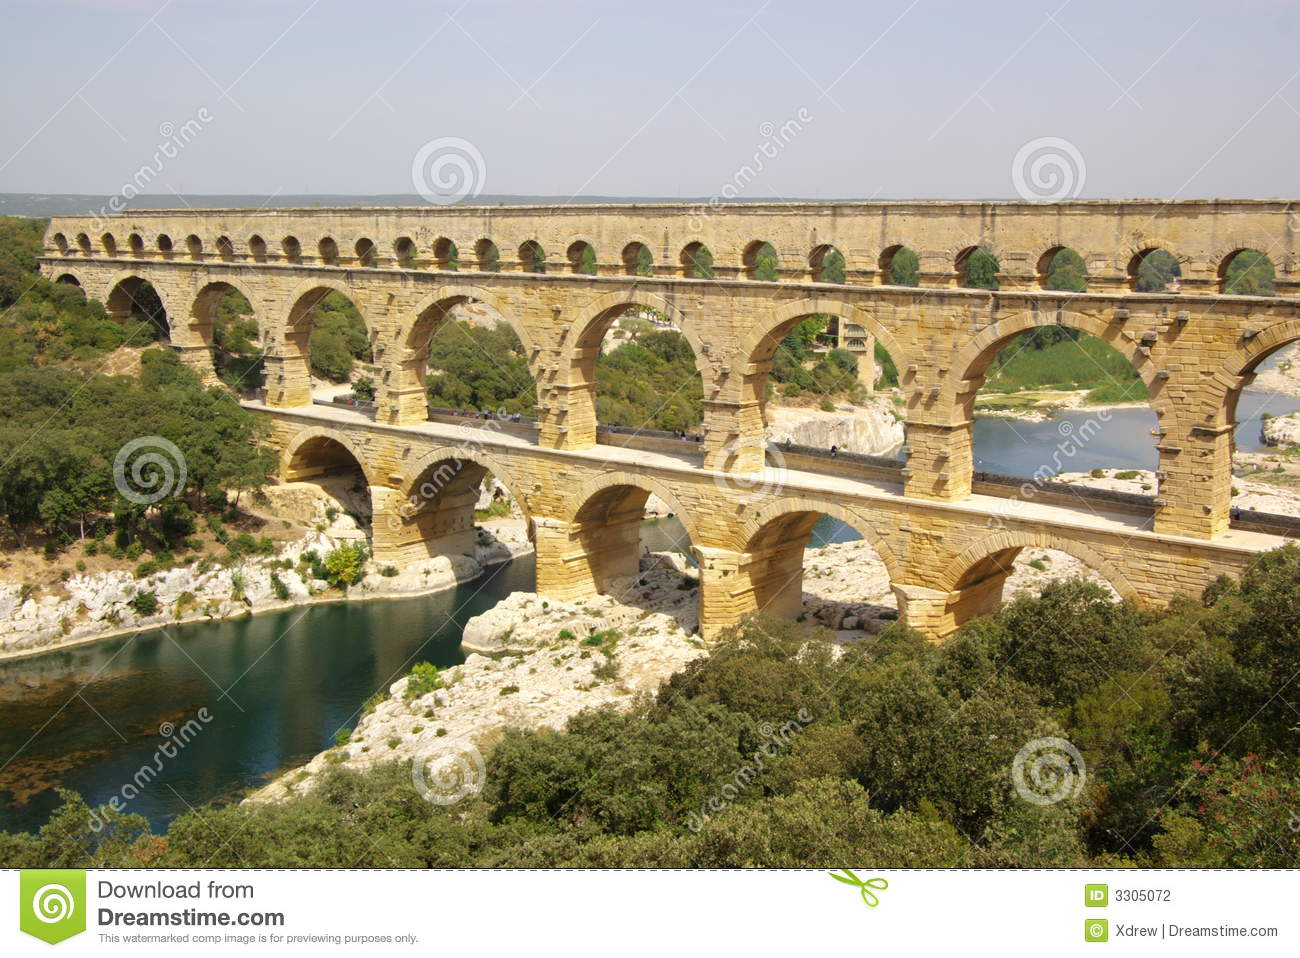 Pont Du Gard Top View Stock Photography - Image: 3305072 Pont Du Gard Top